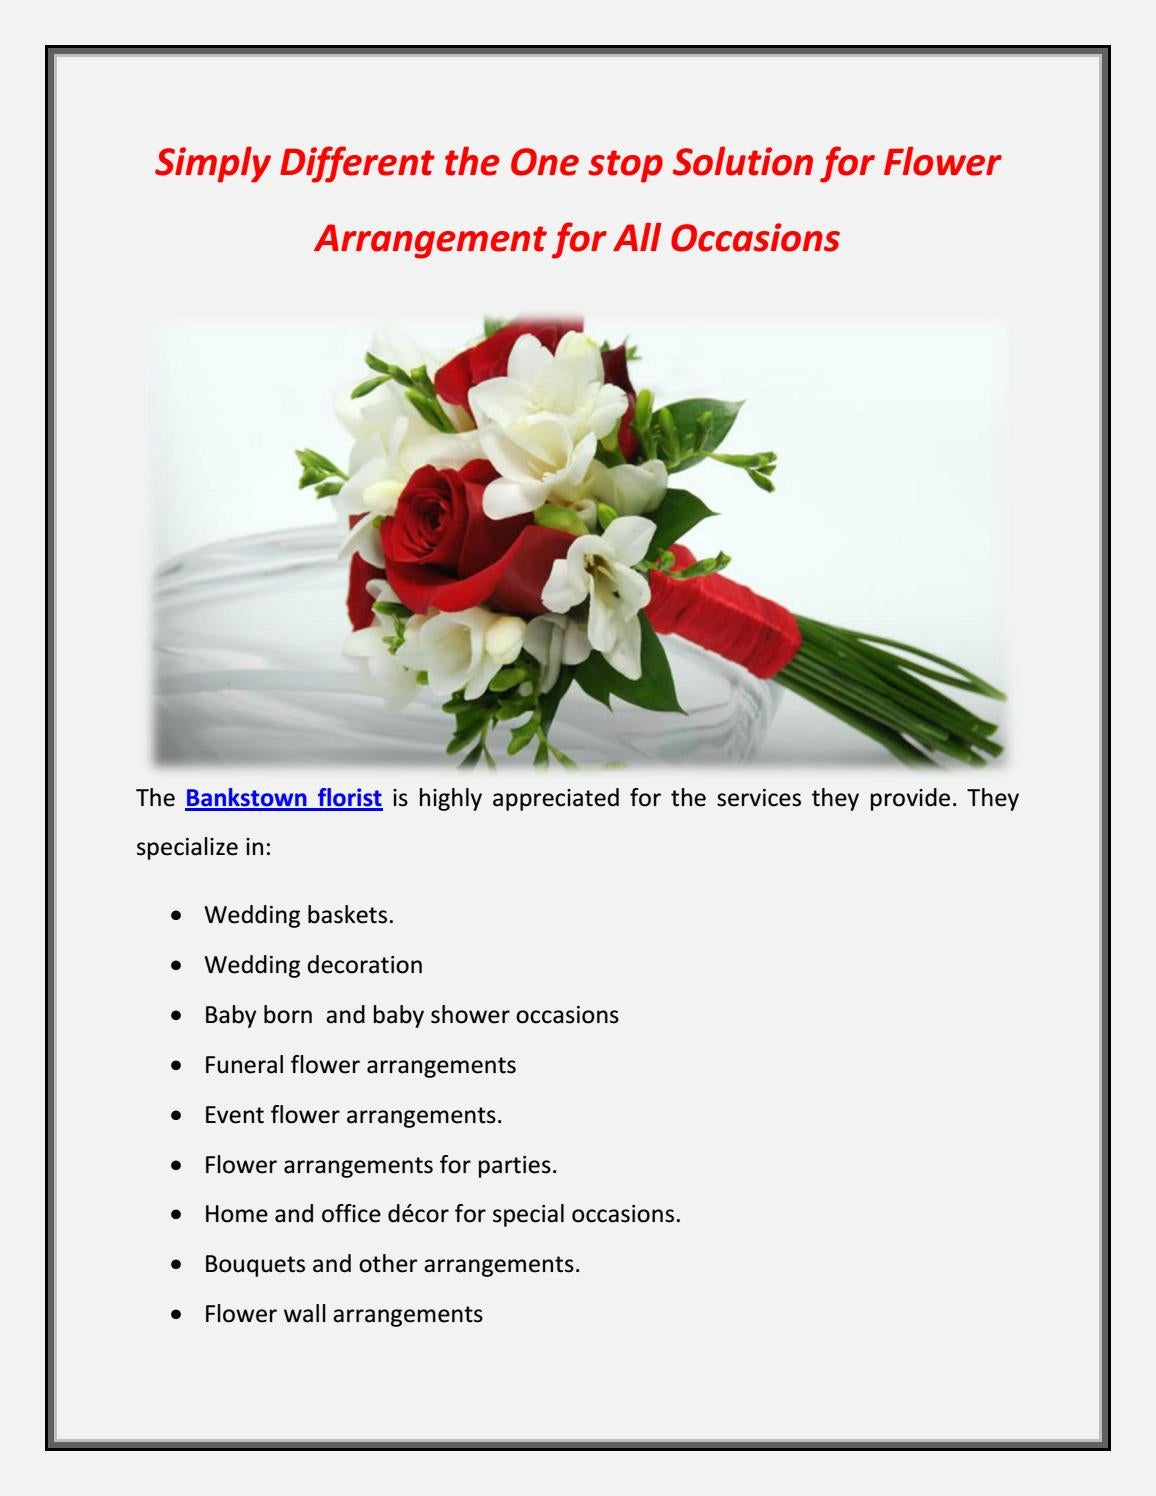 Simply Different The One Stop Solution For Flower Arrangement For